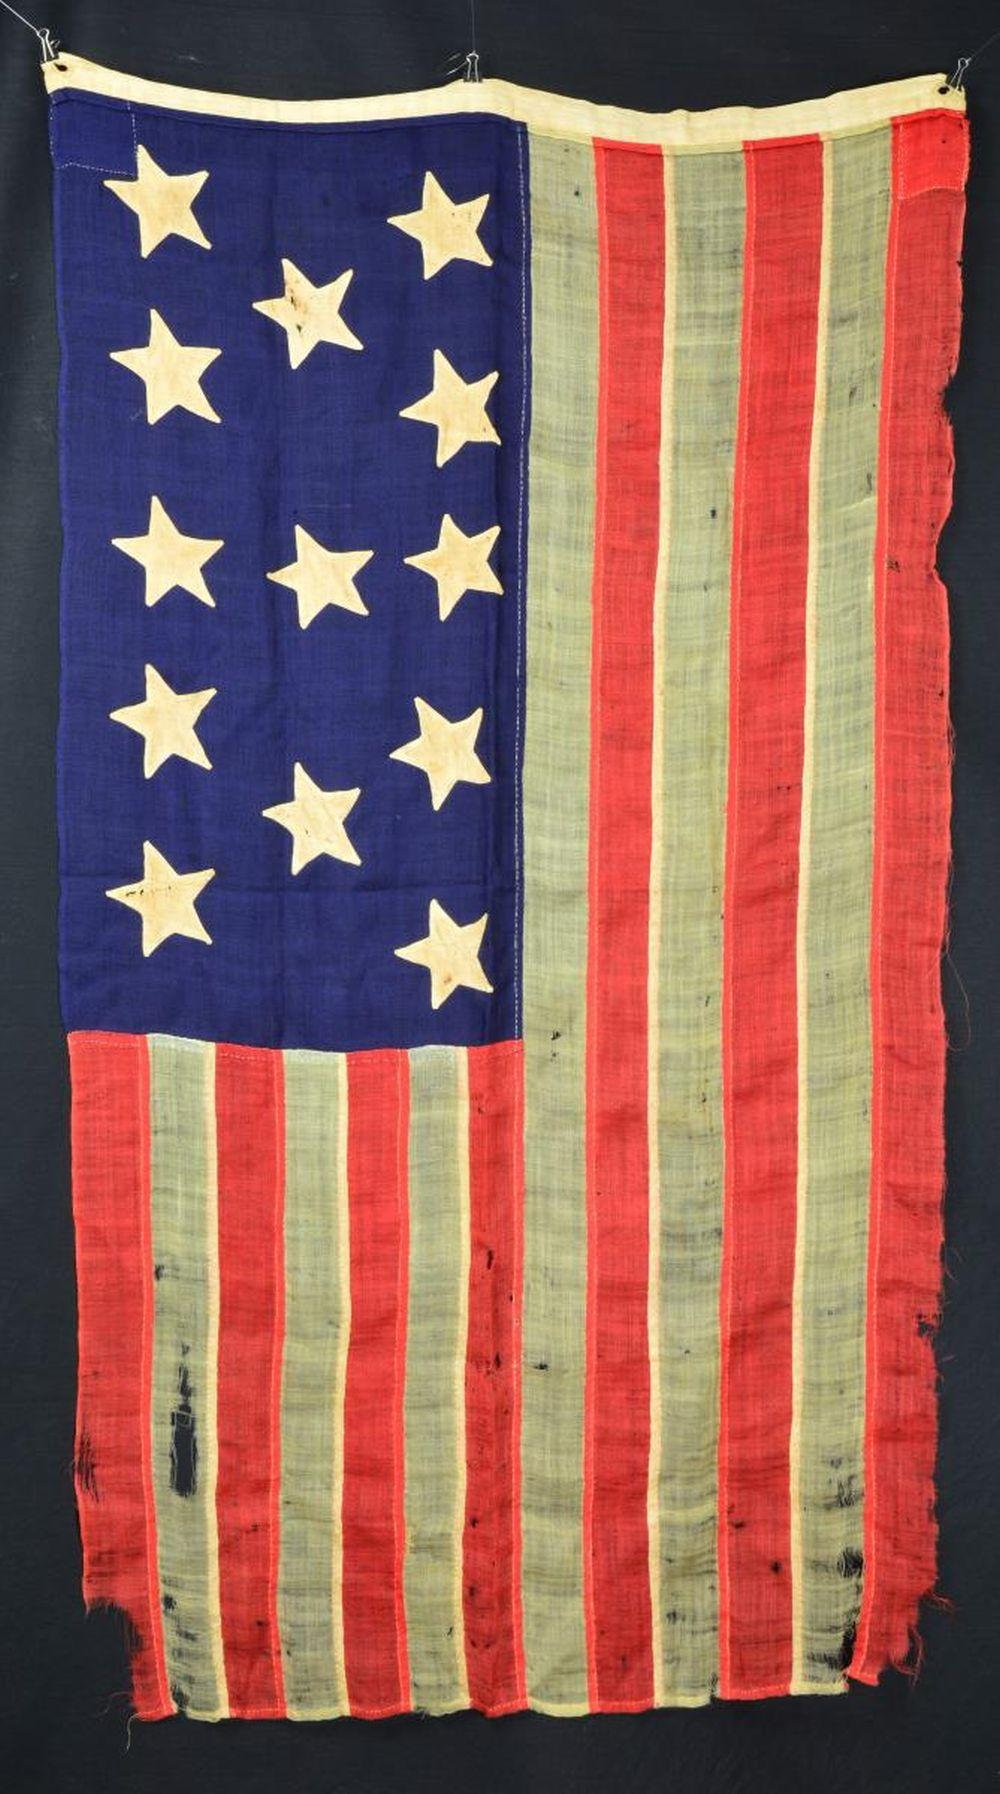 RARE 19TH CENTURY 13 STAR AMERICAN FLAG WITH